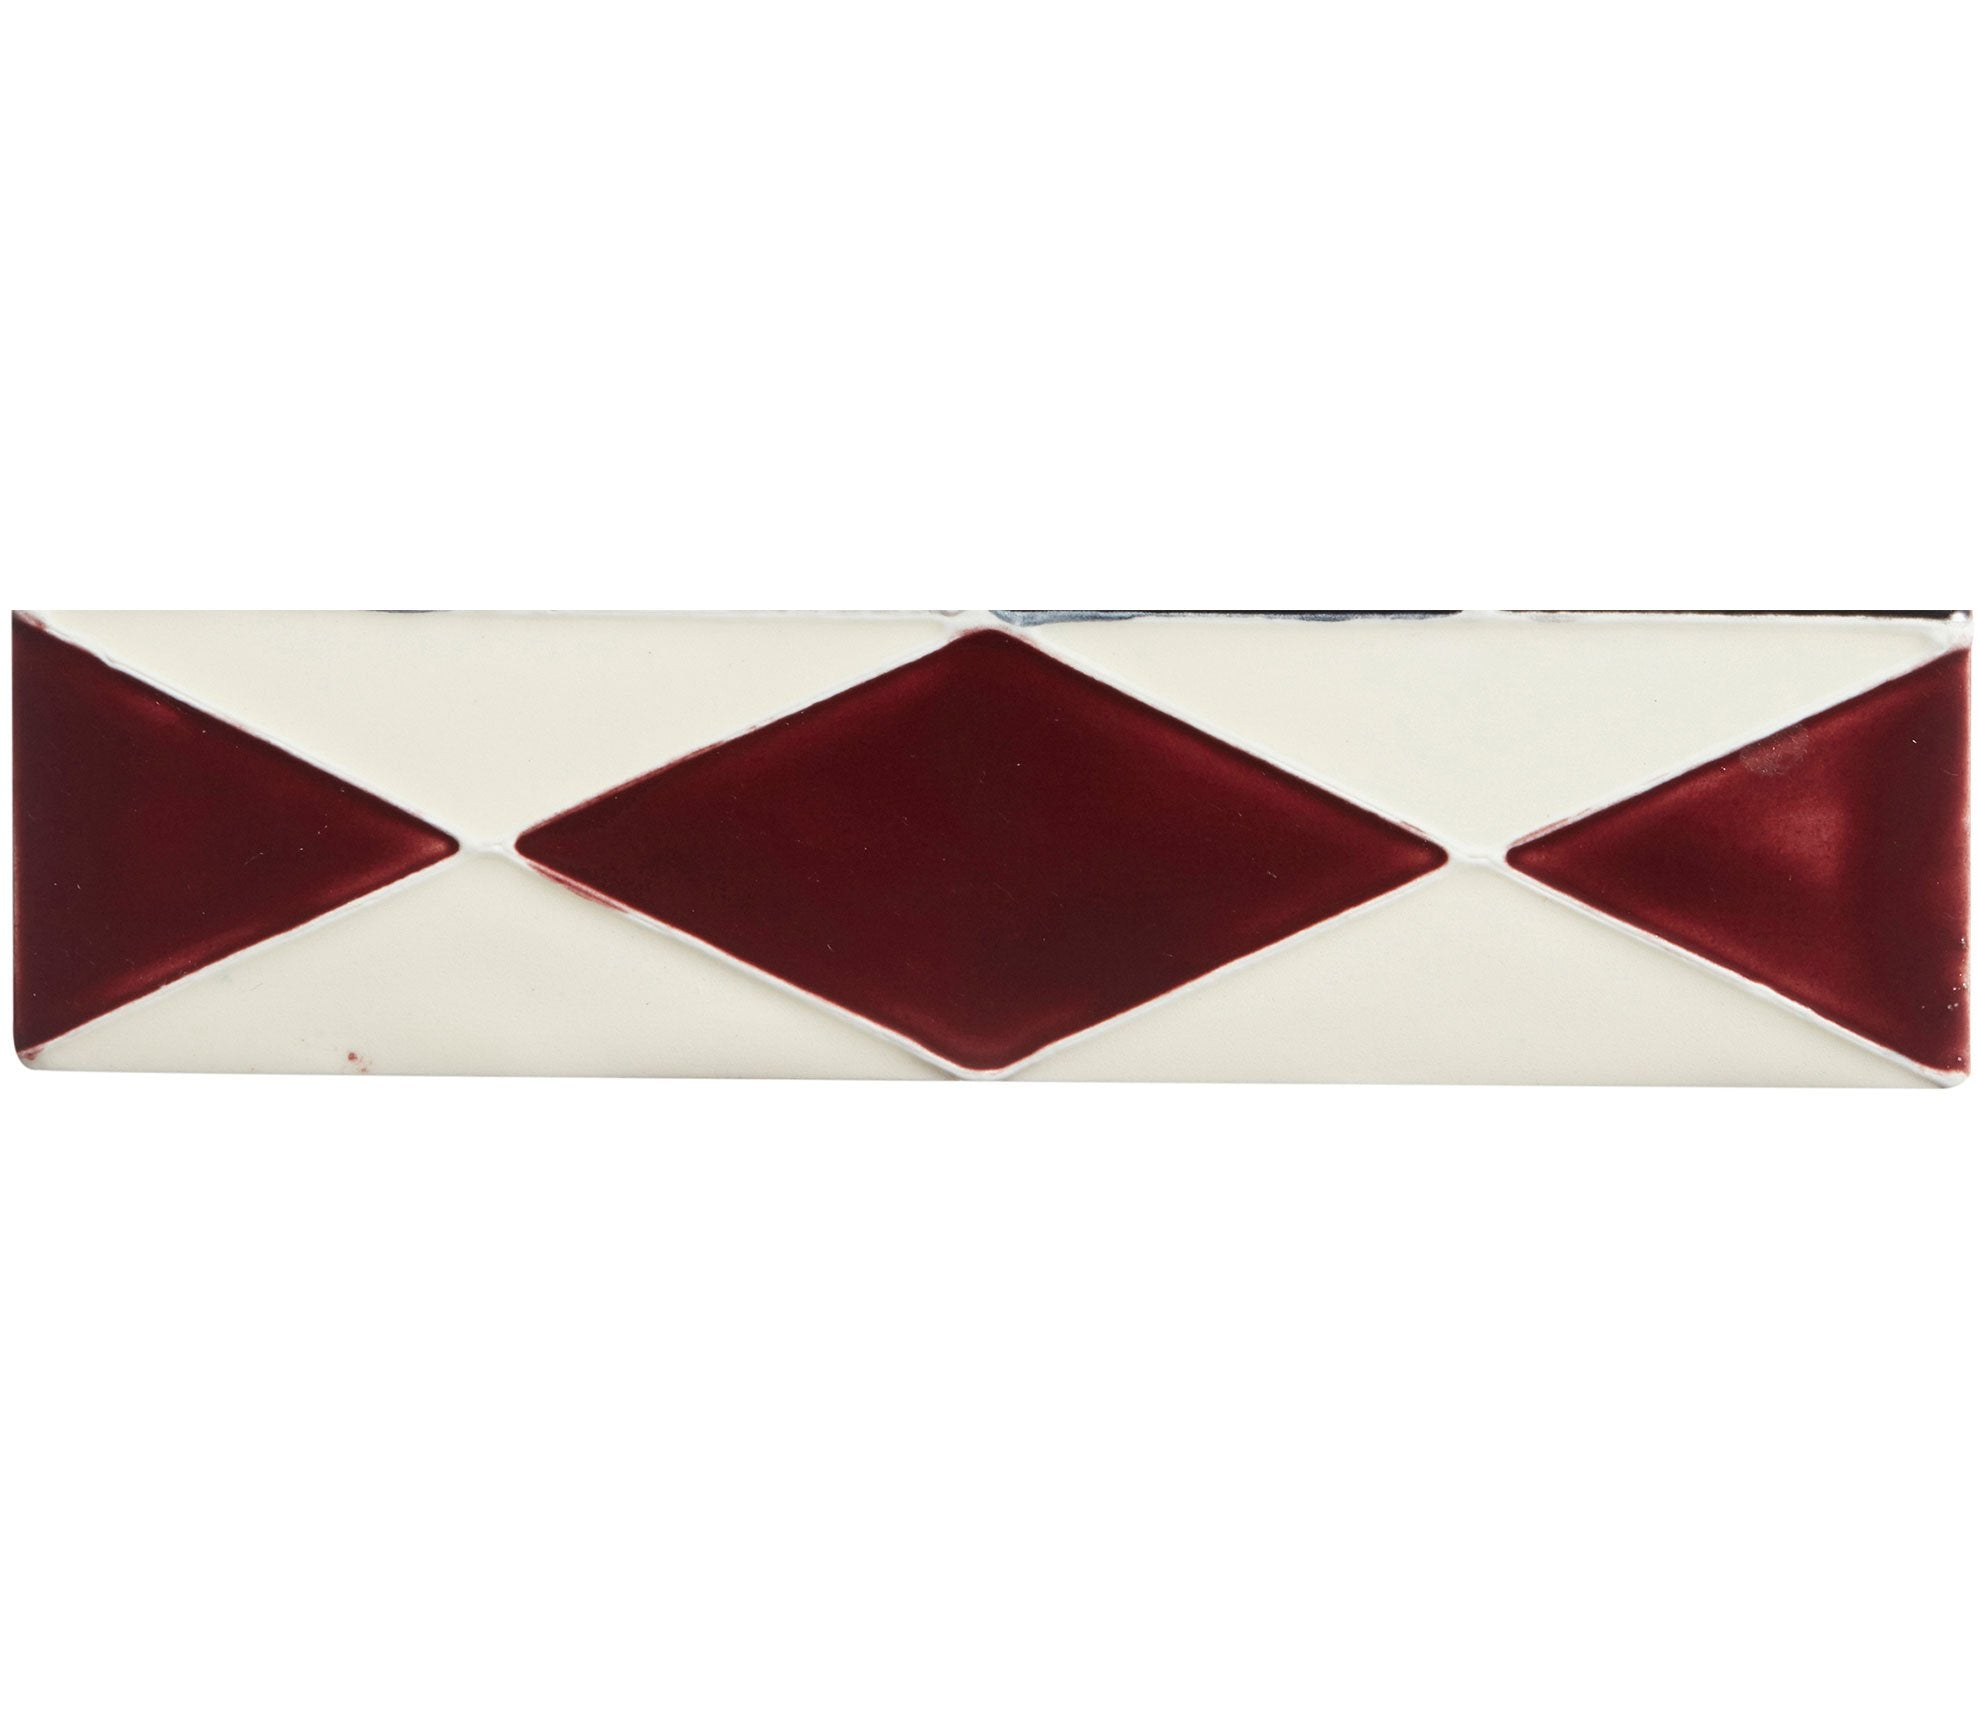 Hanley Tube Lined Decorative Tiles Product Image 18